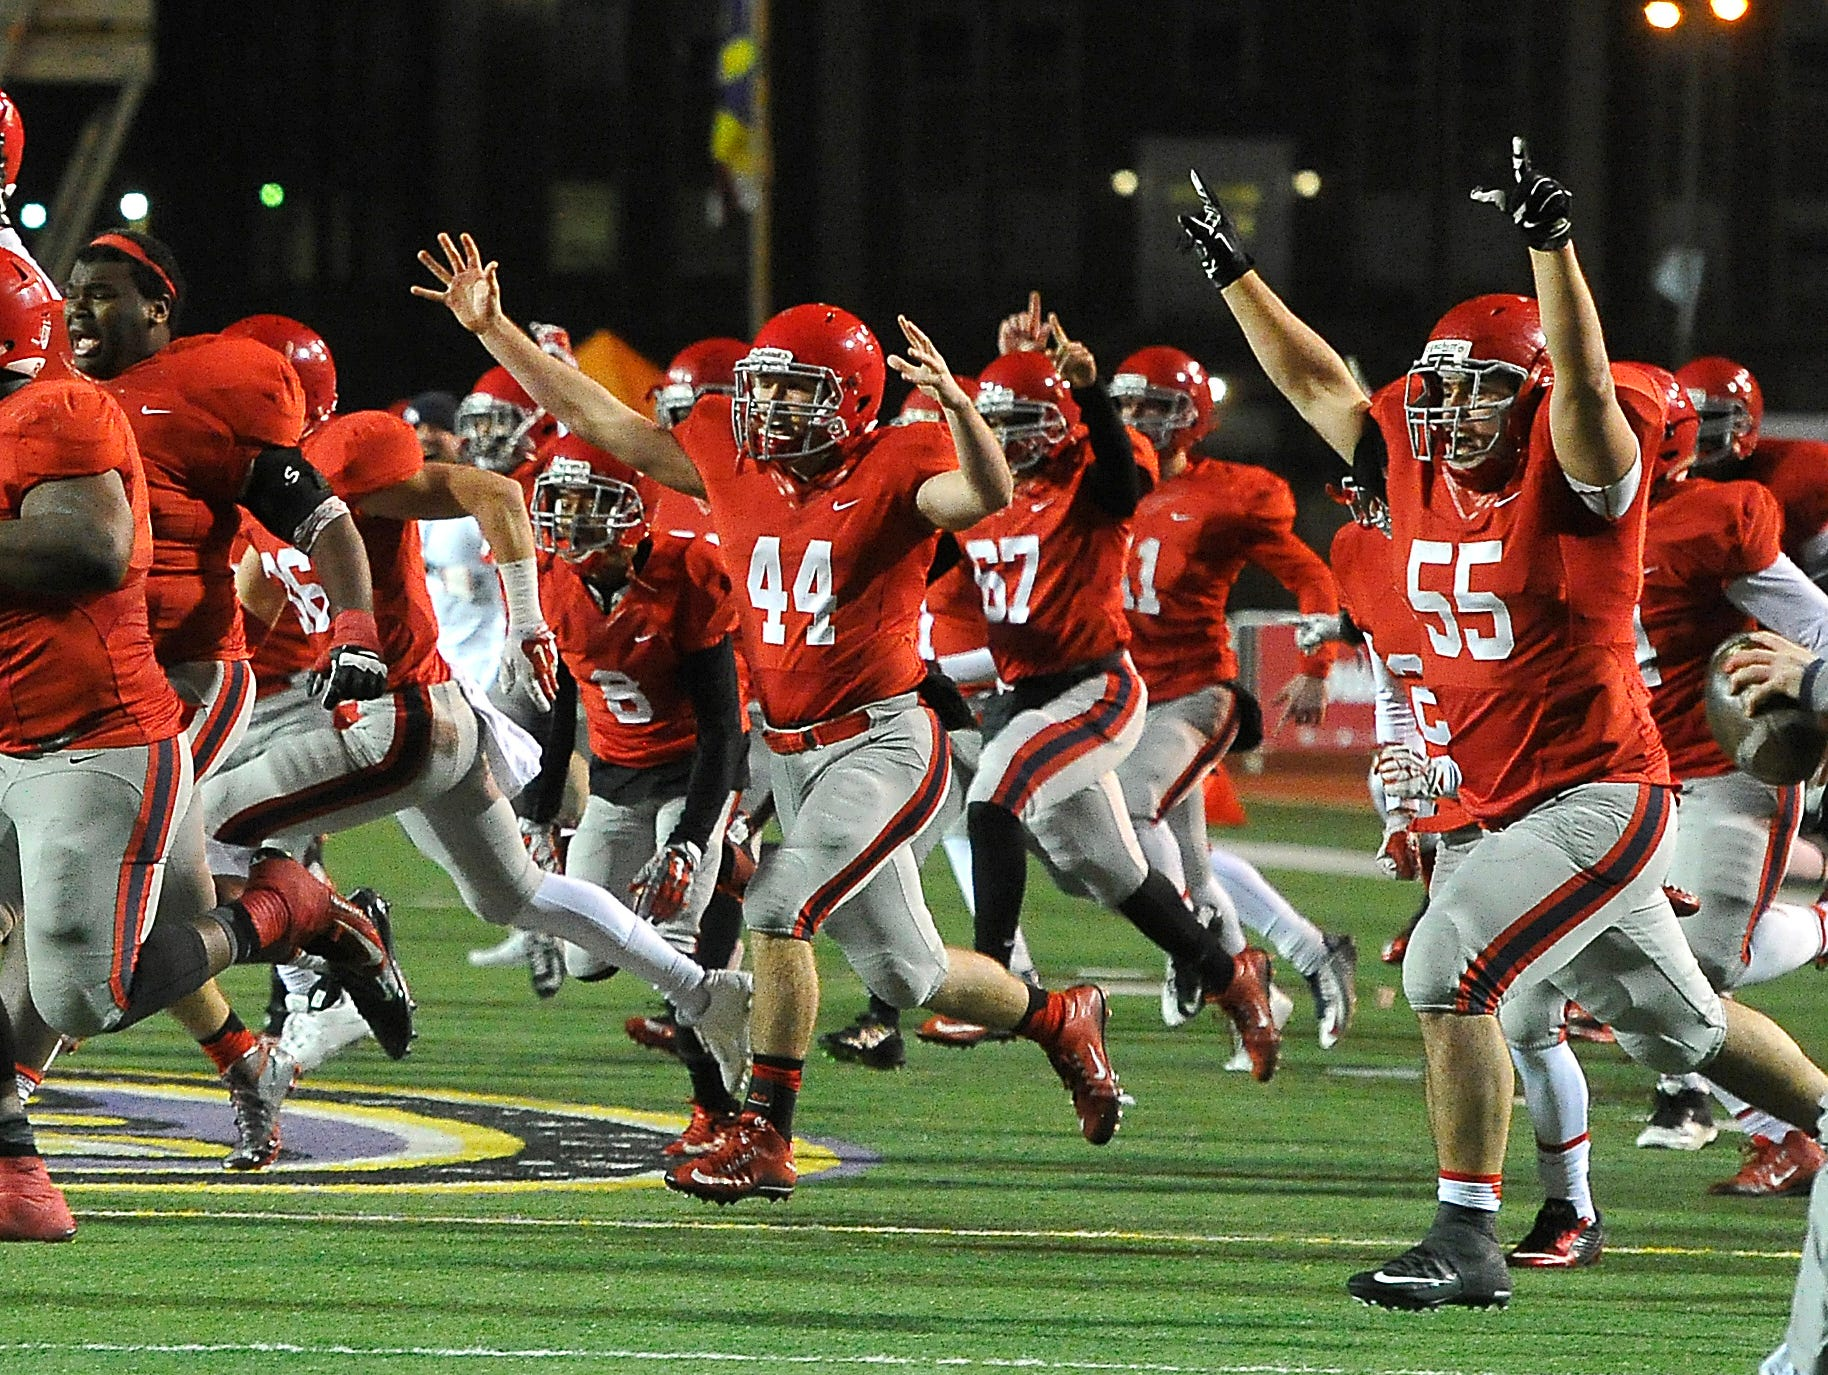 Brentwood Academy players celebrate their 56-55 double-overtime win over Montgomery Bell Academy in the BlueCross Bowl DII-AA state title game on Dec. 3, 2015, in Cookeville.